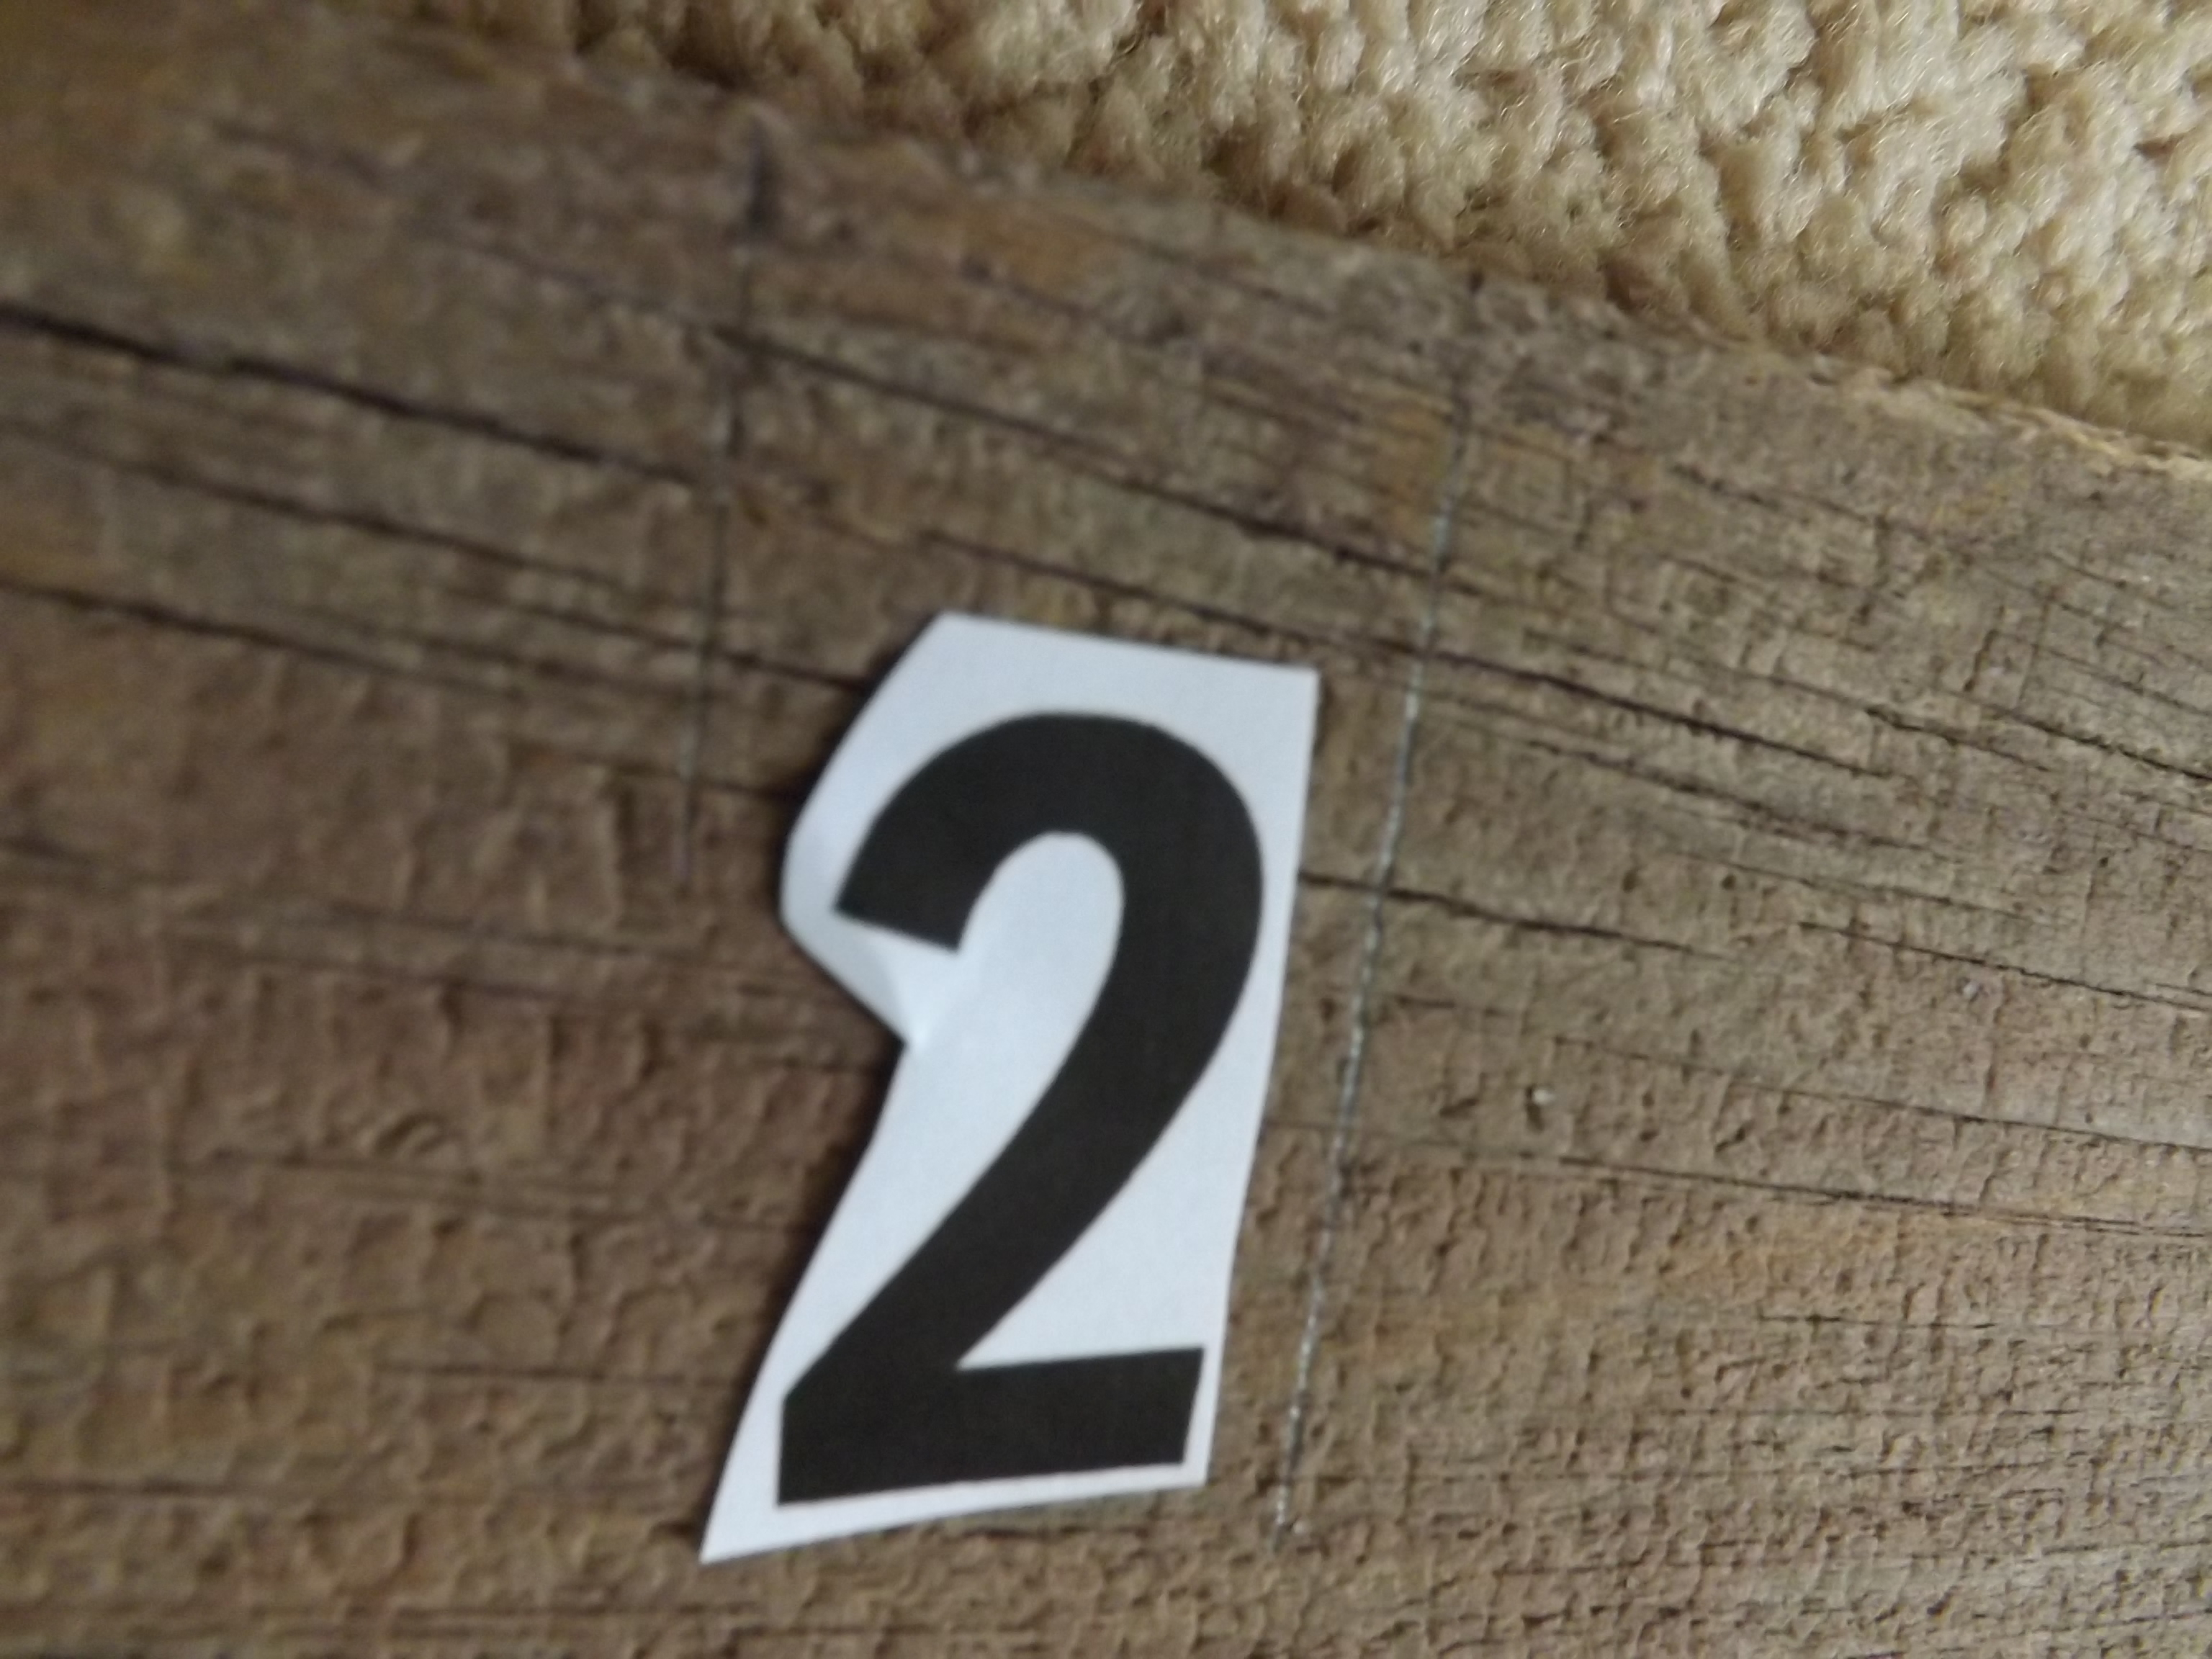 Diy barn board growth chart have a little faith blog shop i also wanted to create smaller tick lines for counting in between quarter and half inch marks between the feet markings so i used the same length for each biocorpaavc